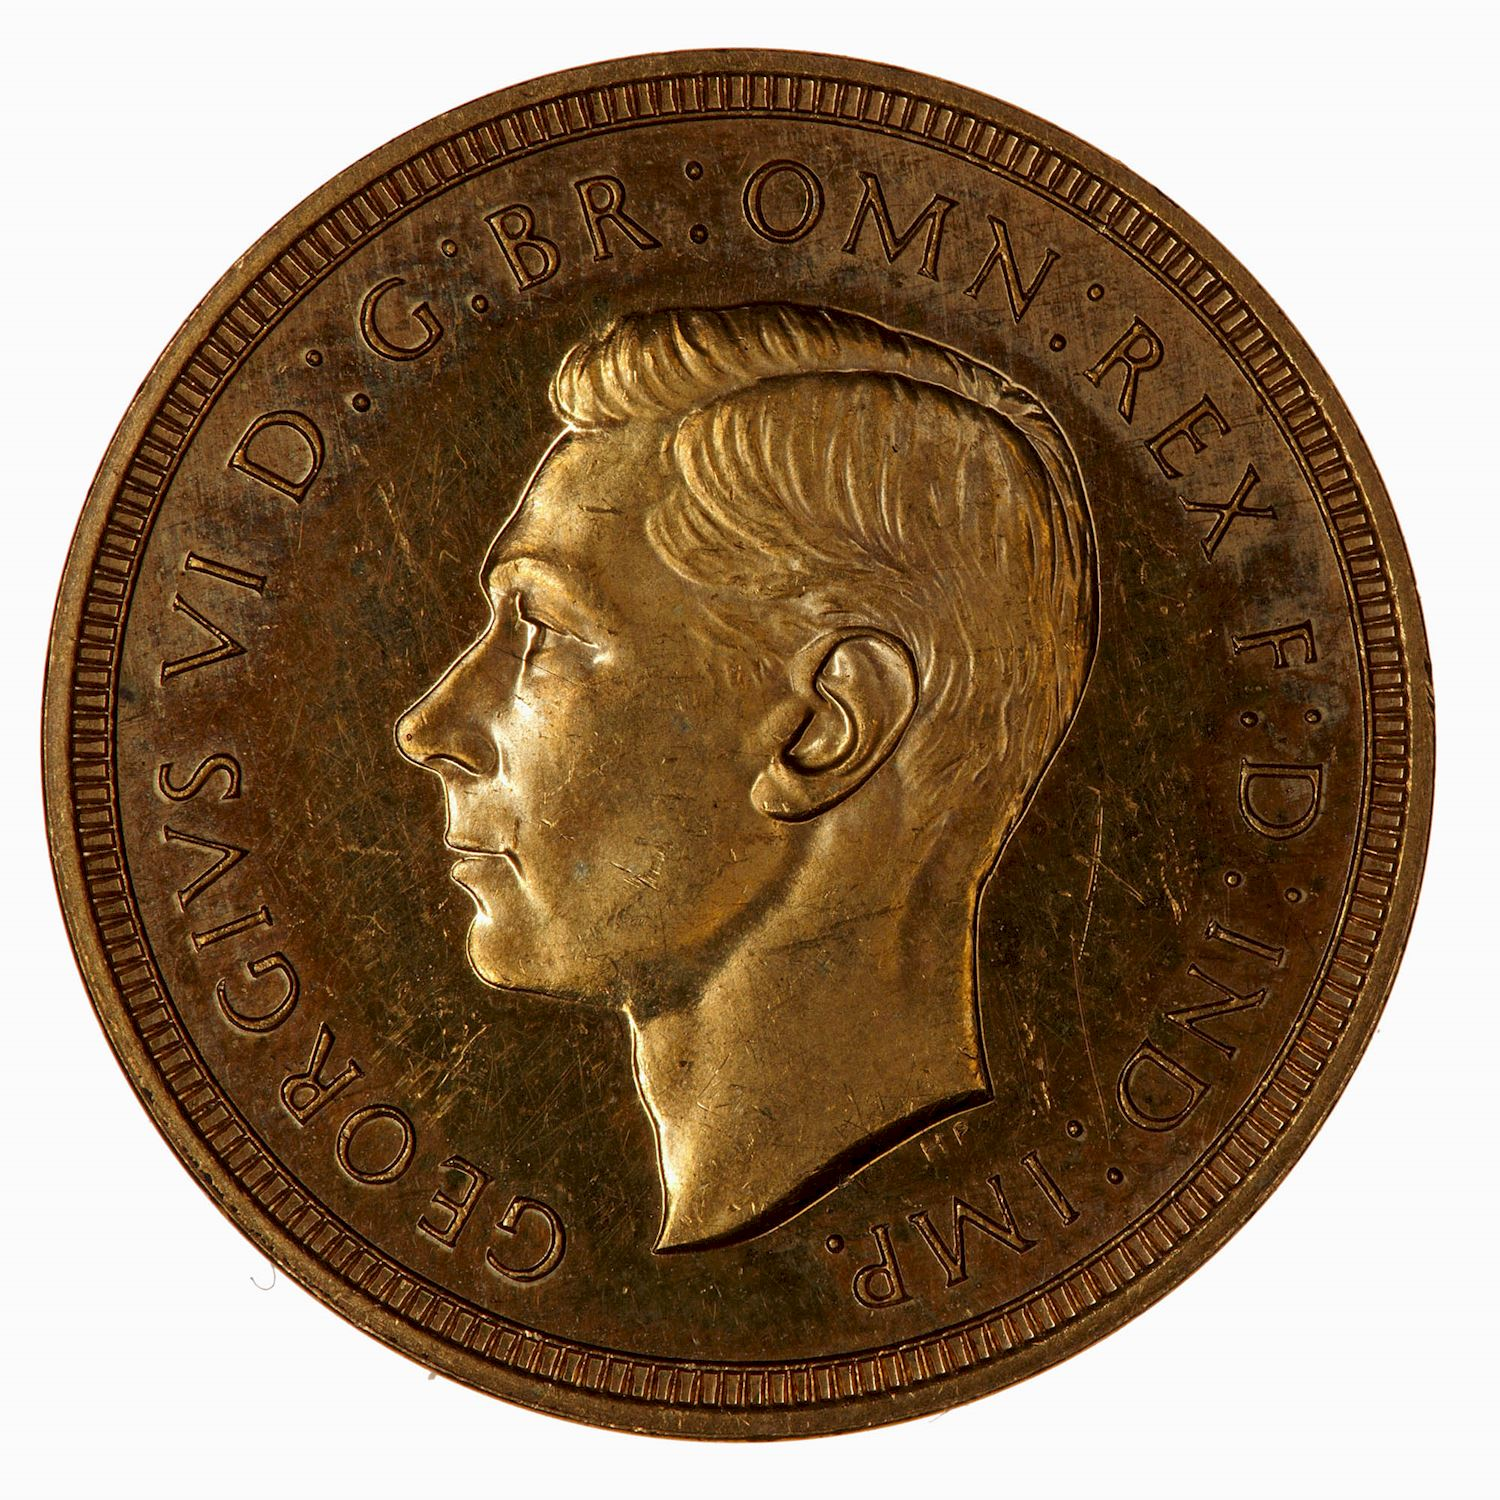 Sovereign (Pre-Decimal): Photo Proof Coin - Sovereign, George VI, Great Britain, 1937